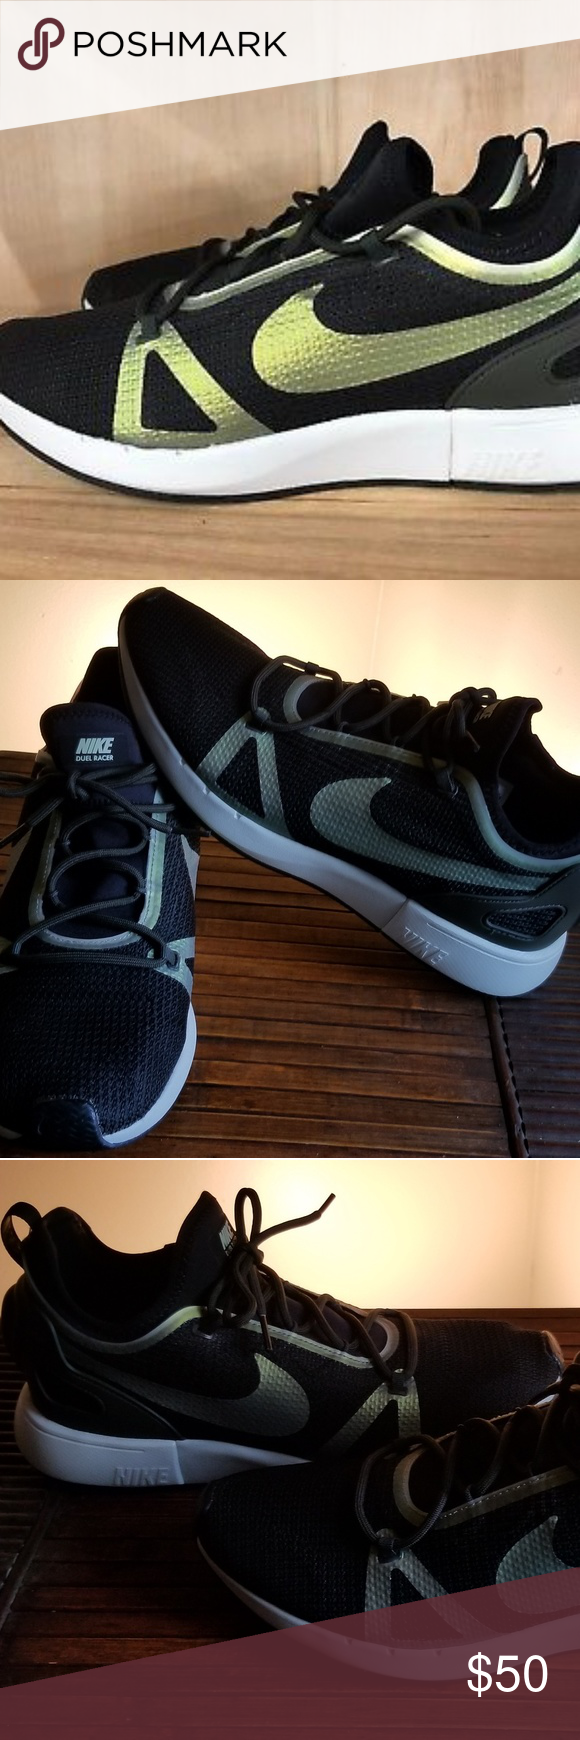 Nike Dual Racer sneakers. New with no